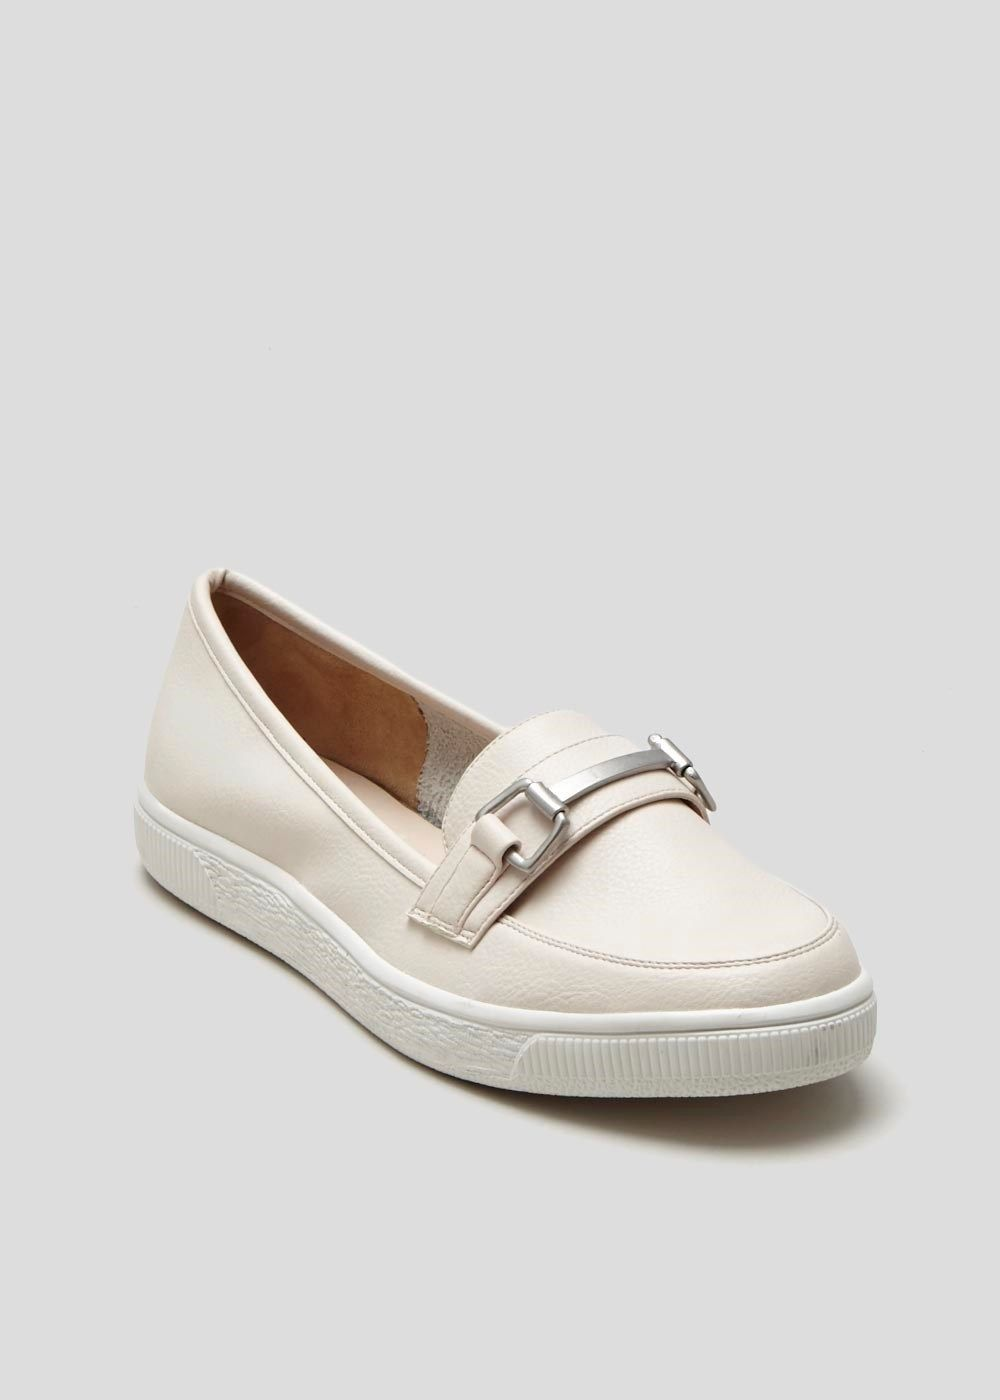 b3edf5ee0275 Sporty nude for non-trainer days. Bargain price! Snaffle Loafer ...